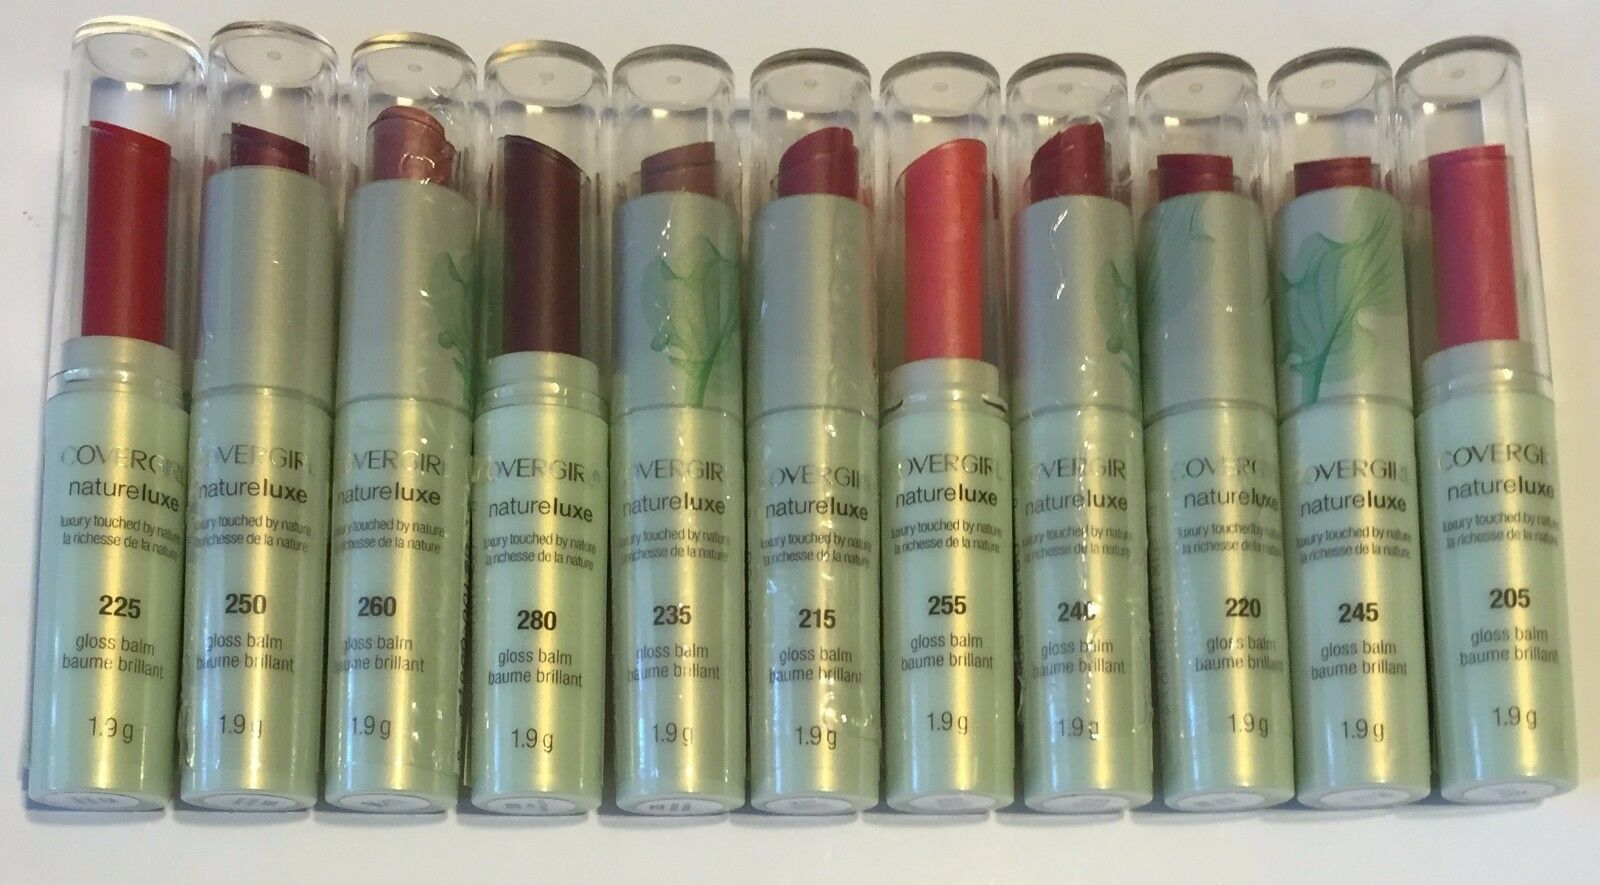 Primary image for Covergirl Natureluxe Lip Gloss Balm Lipstick *Choose your shade* NEW SEALED